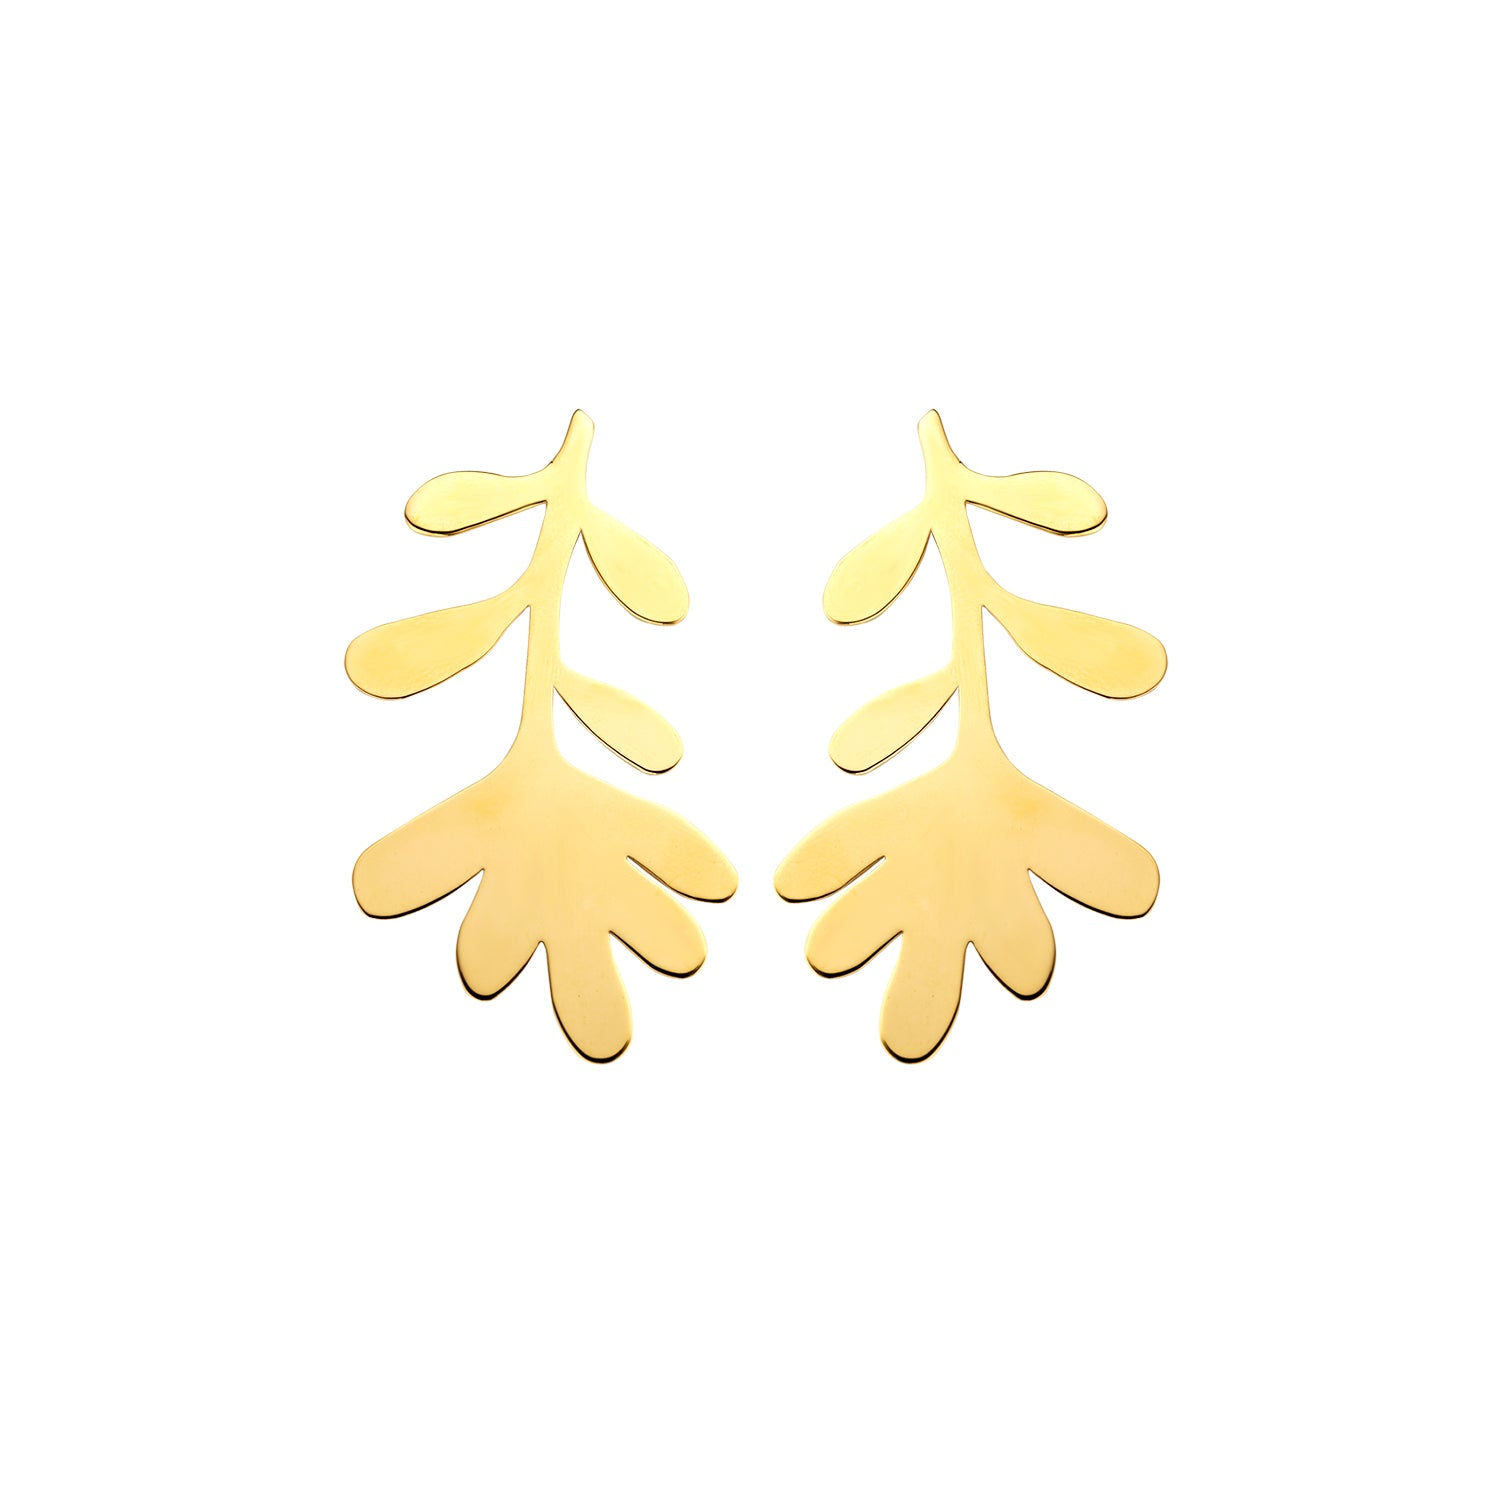 Coral large gold earrings - Souvenirs de Pomme